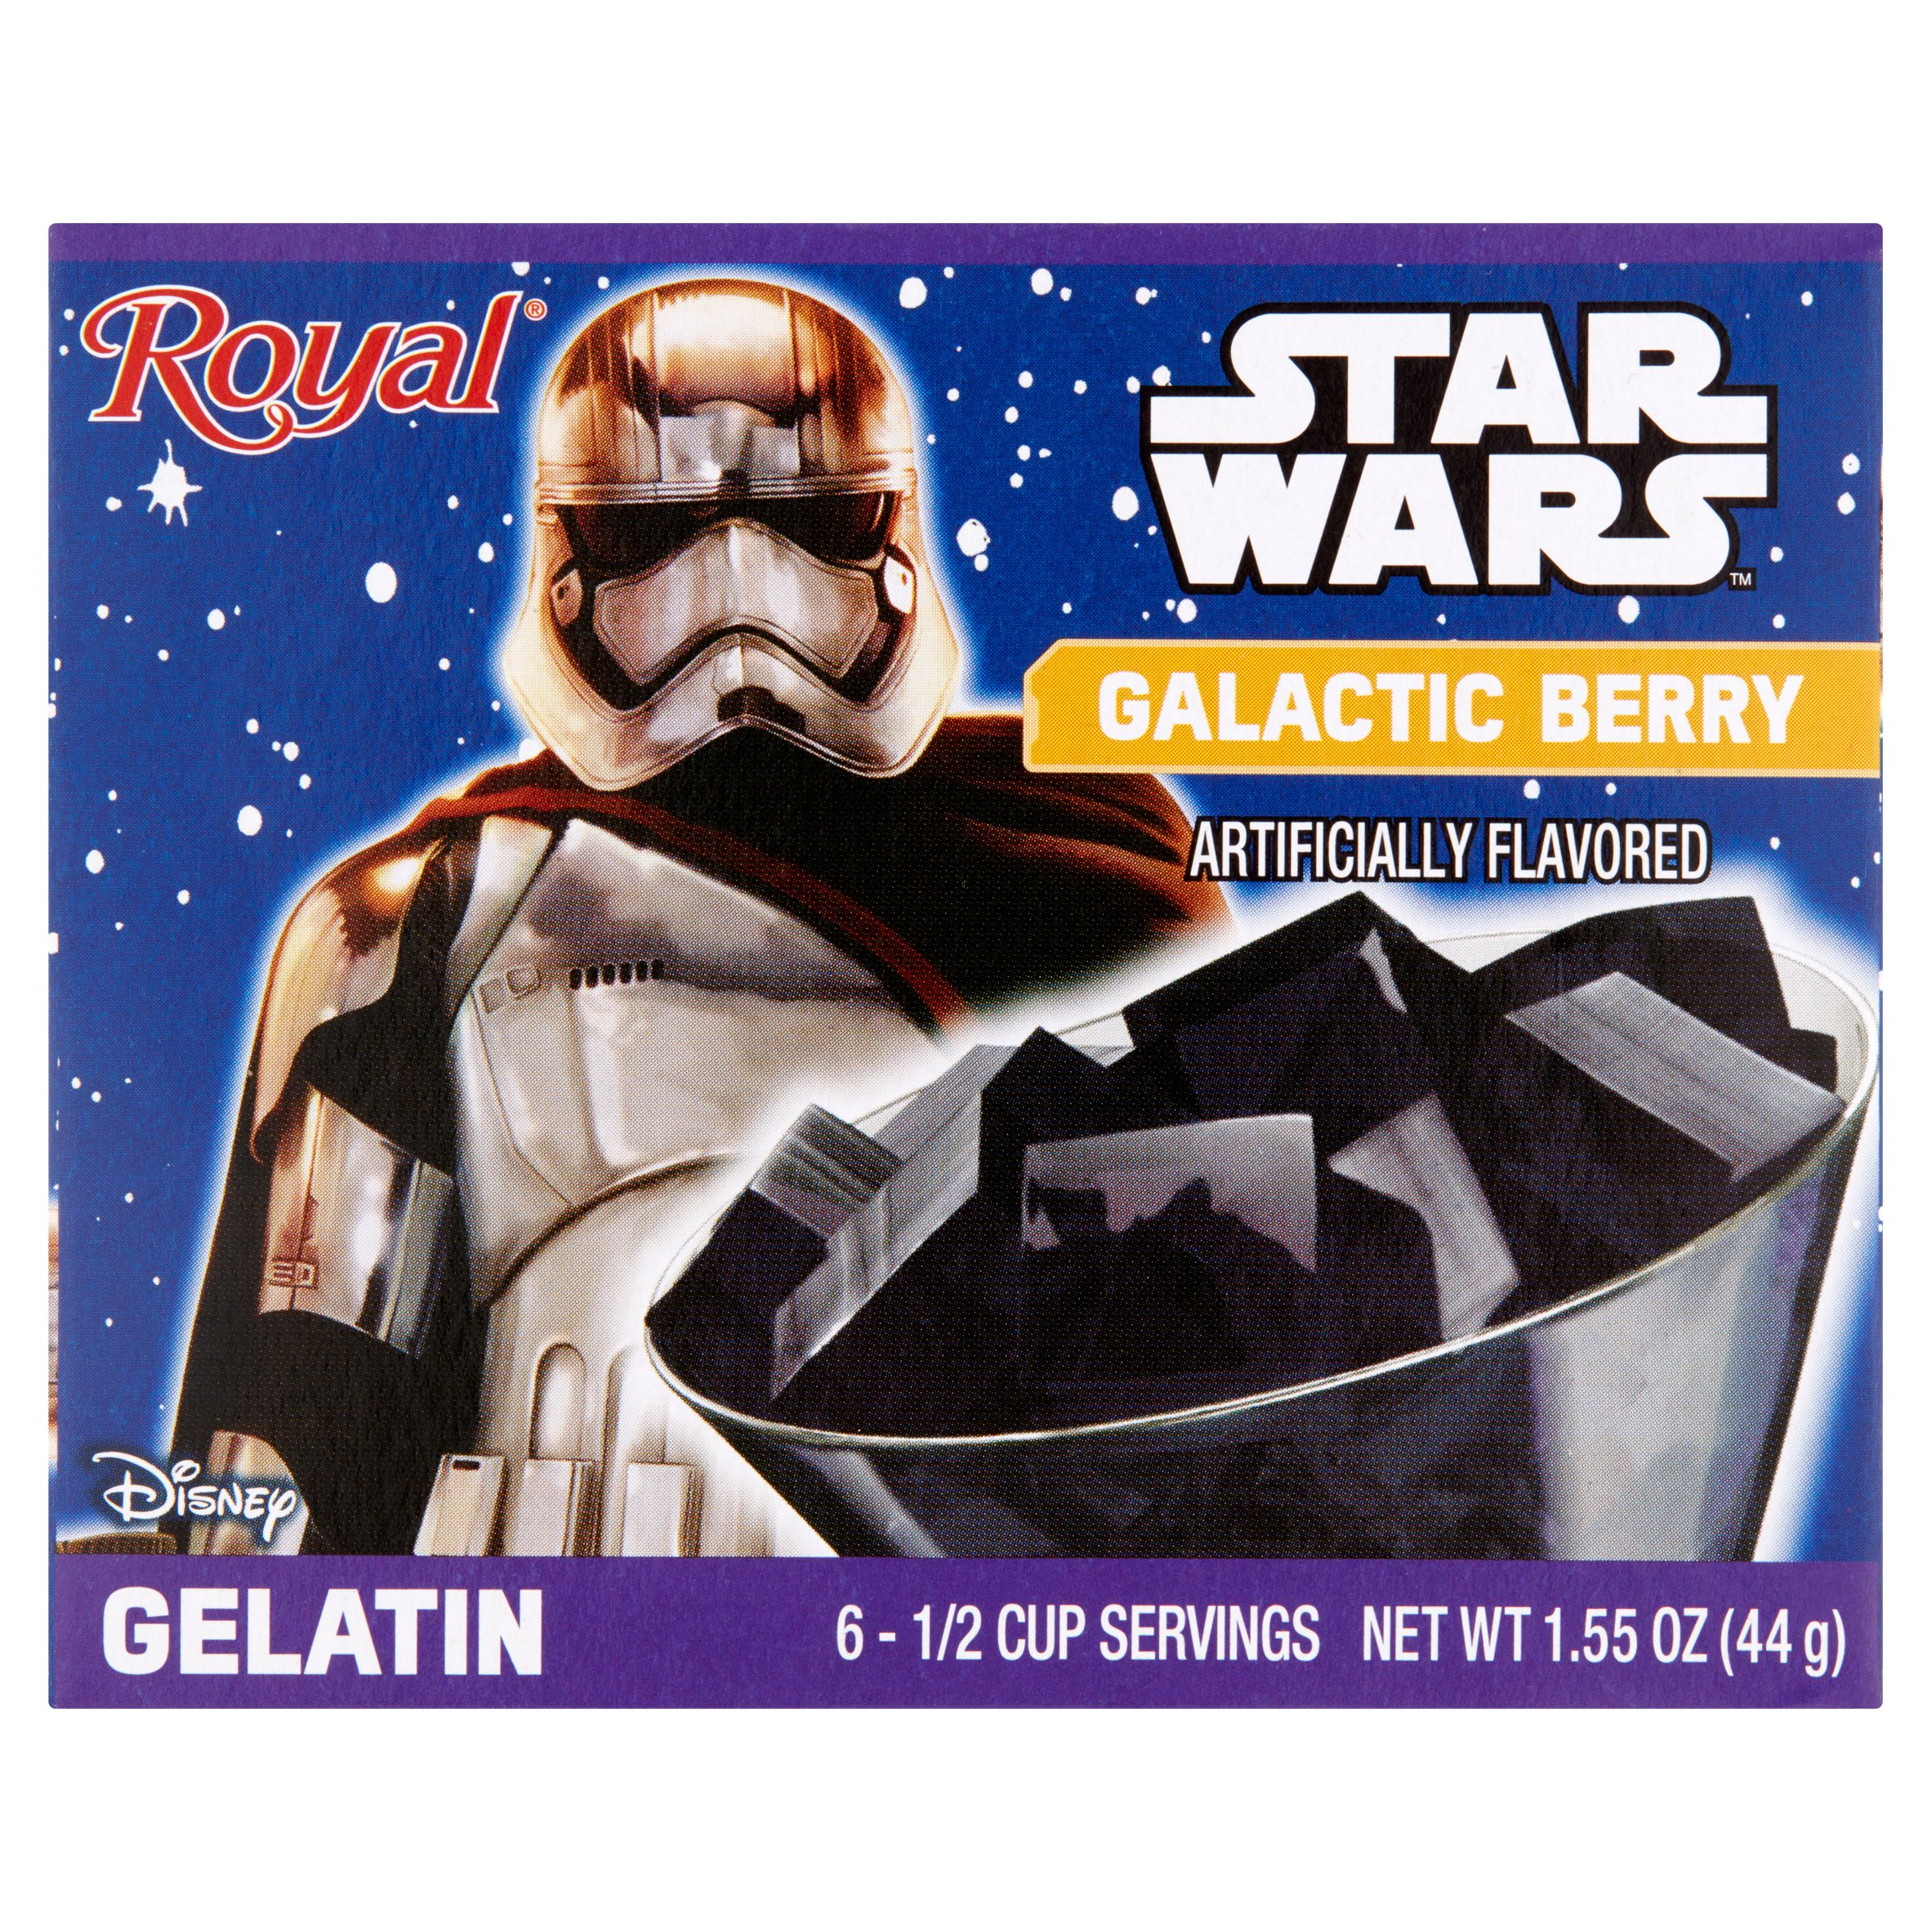 (3 Pack) Royal Disney Star Wars Galactic Berry Gelatin, 1.55 oz